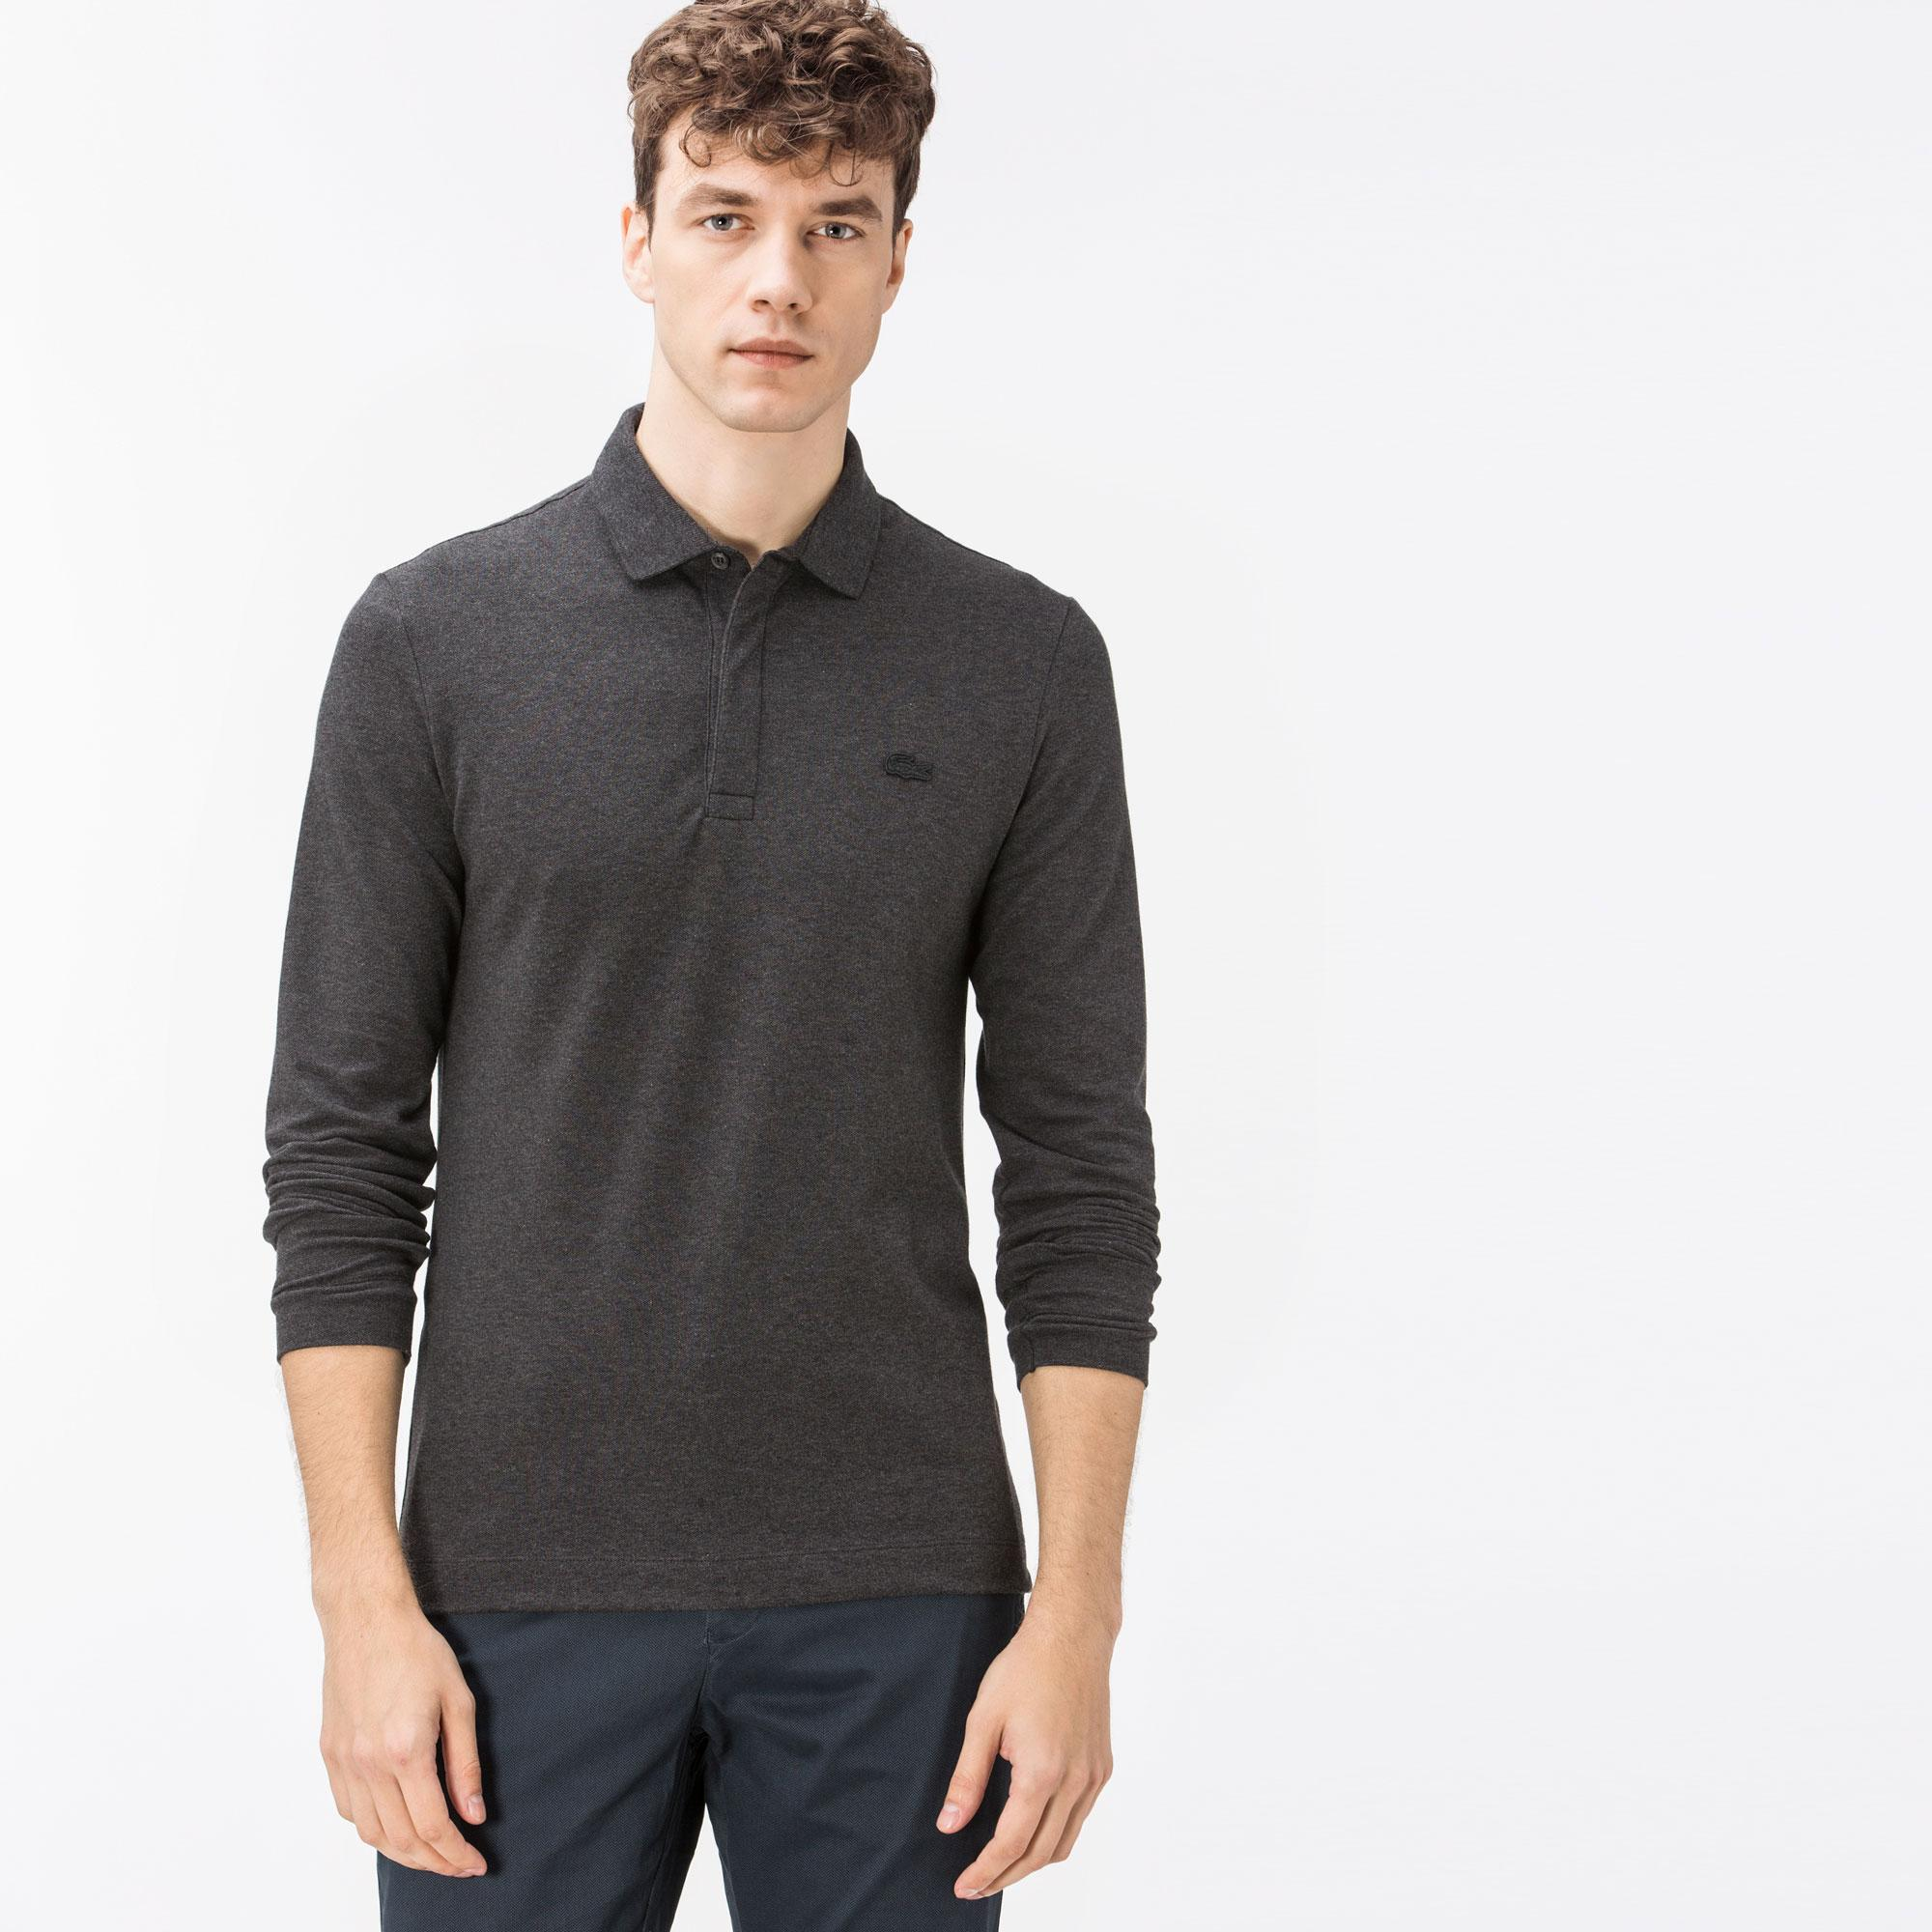 Lacoste Men's Regular Fit Long Sleeves Grey Polo